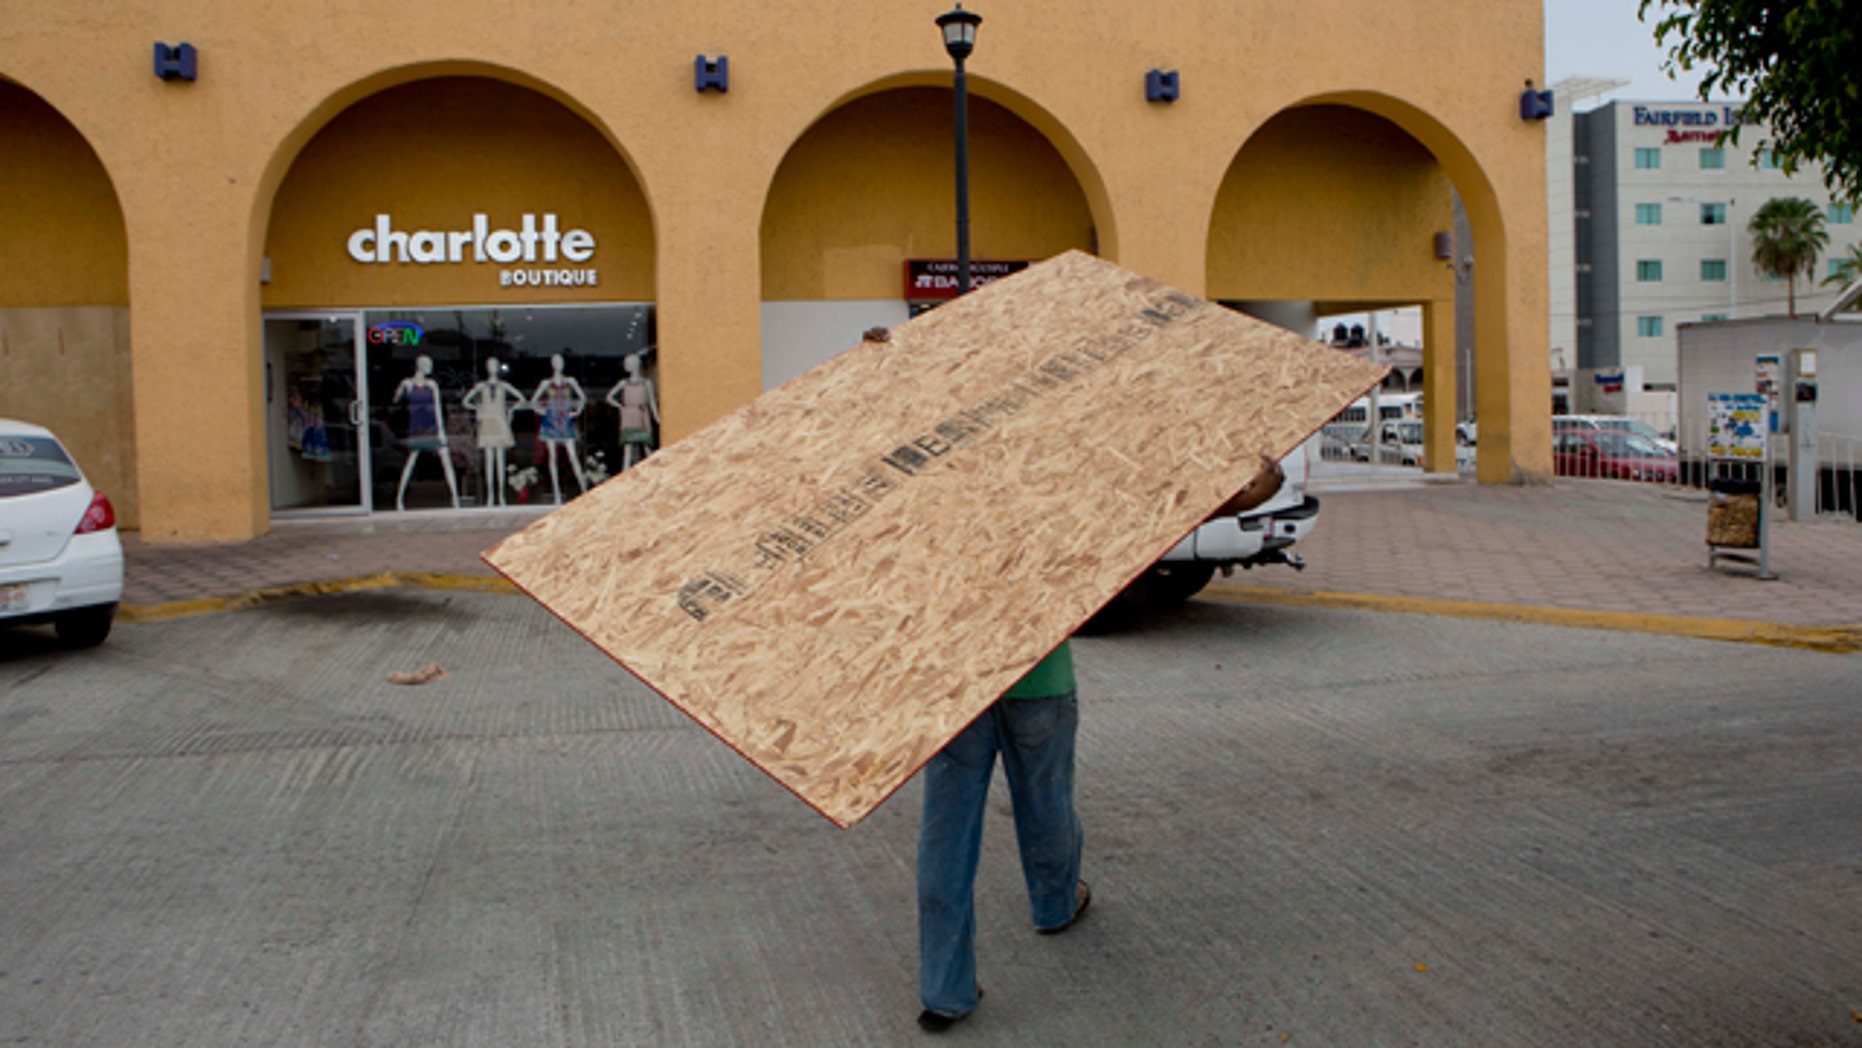 A worker hauls a board to use on a storefront window as protection against Hurricane Blanca in Cabo San Lucas, Mexico, Saturday June 6, 2015. The unpredictable Blanca, which strengthened suddenly from a Category 1 to a Category 4 storm on Saturday before weakening slightly, is expected to make landfall as a tropical storm on Monday. But authorities said its outer bands could start hitting the southern Baja California Peninsula as a hurricane on Sunday. (AP Photo/Eduardo Verdugo)